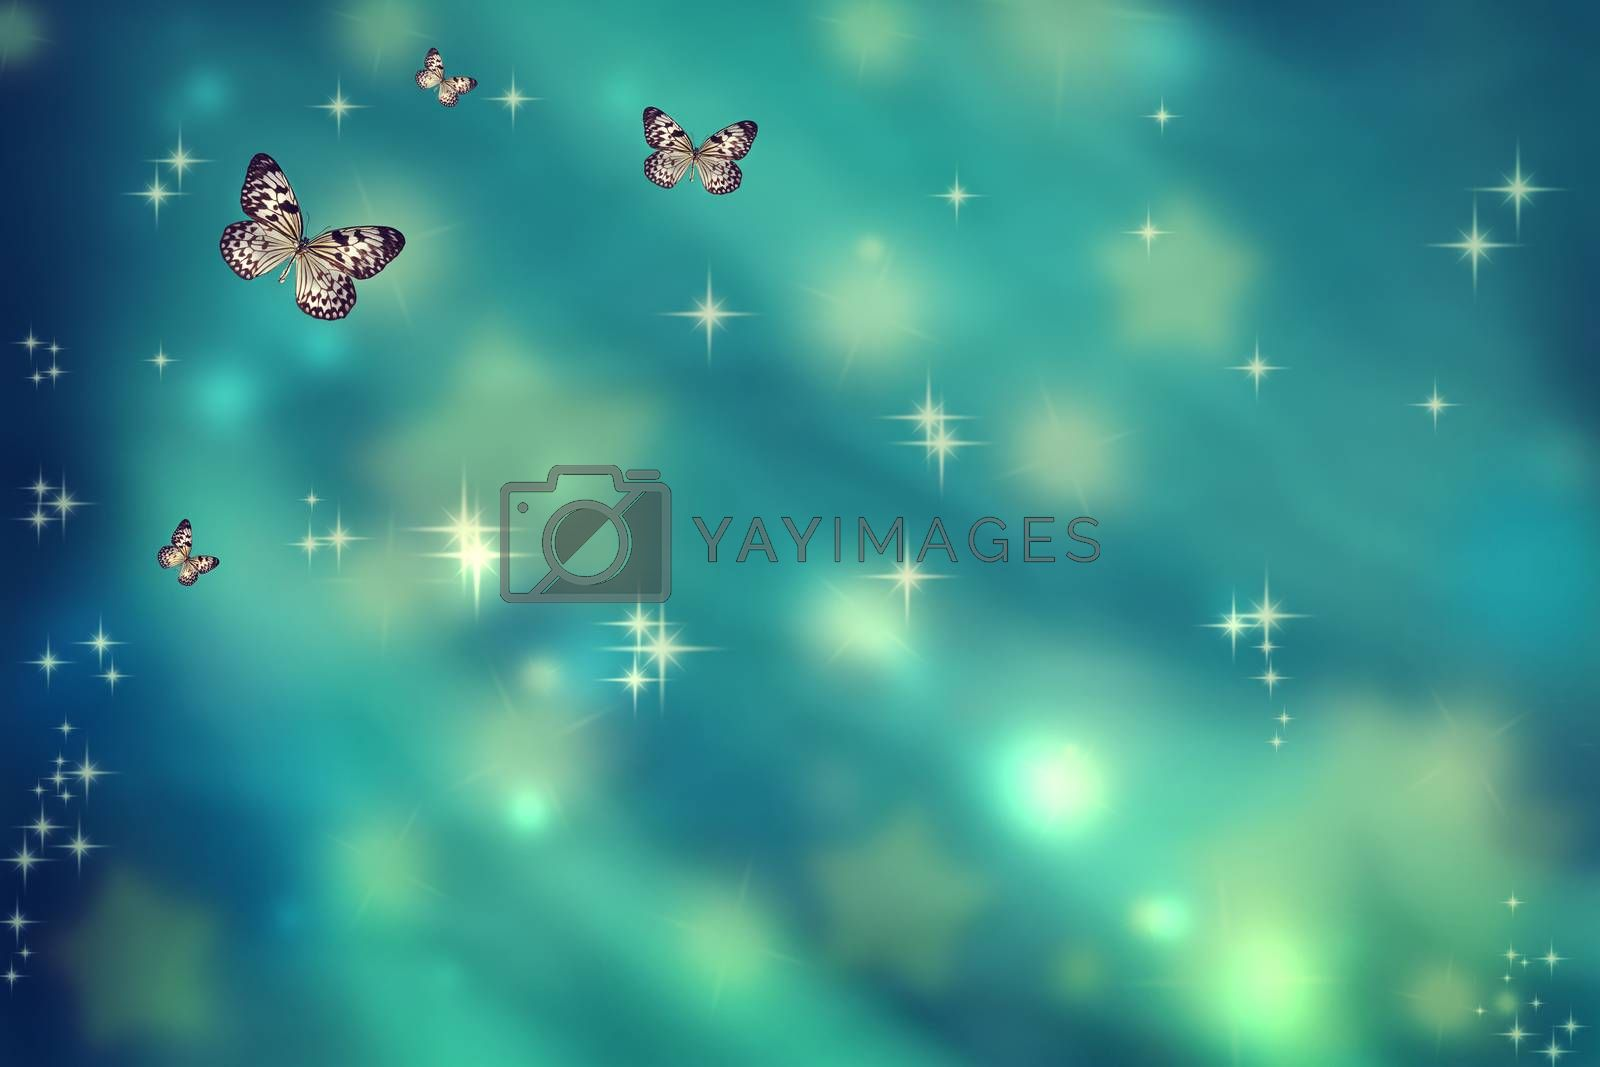 Royalty free image of Butterflies on teal background by melpomene